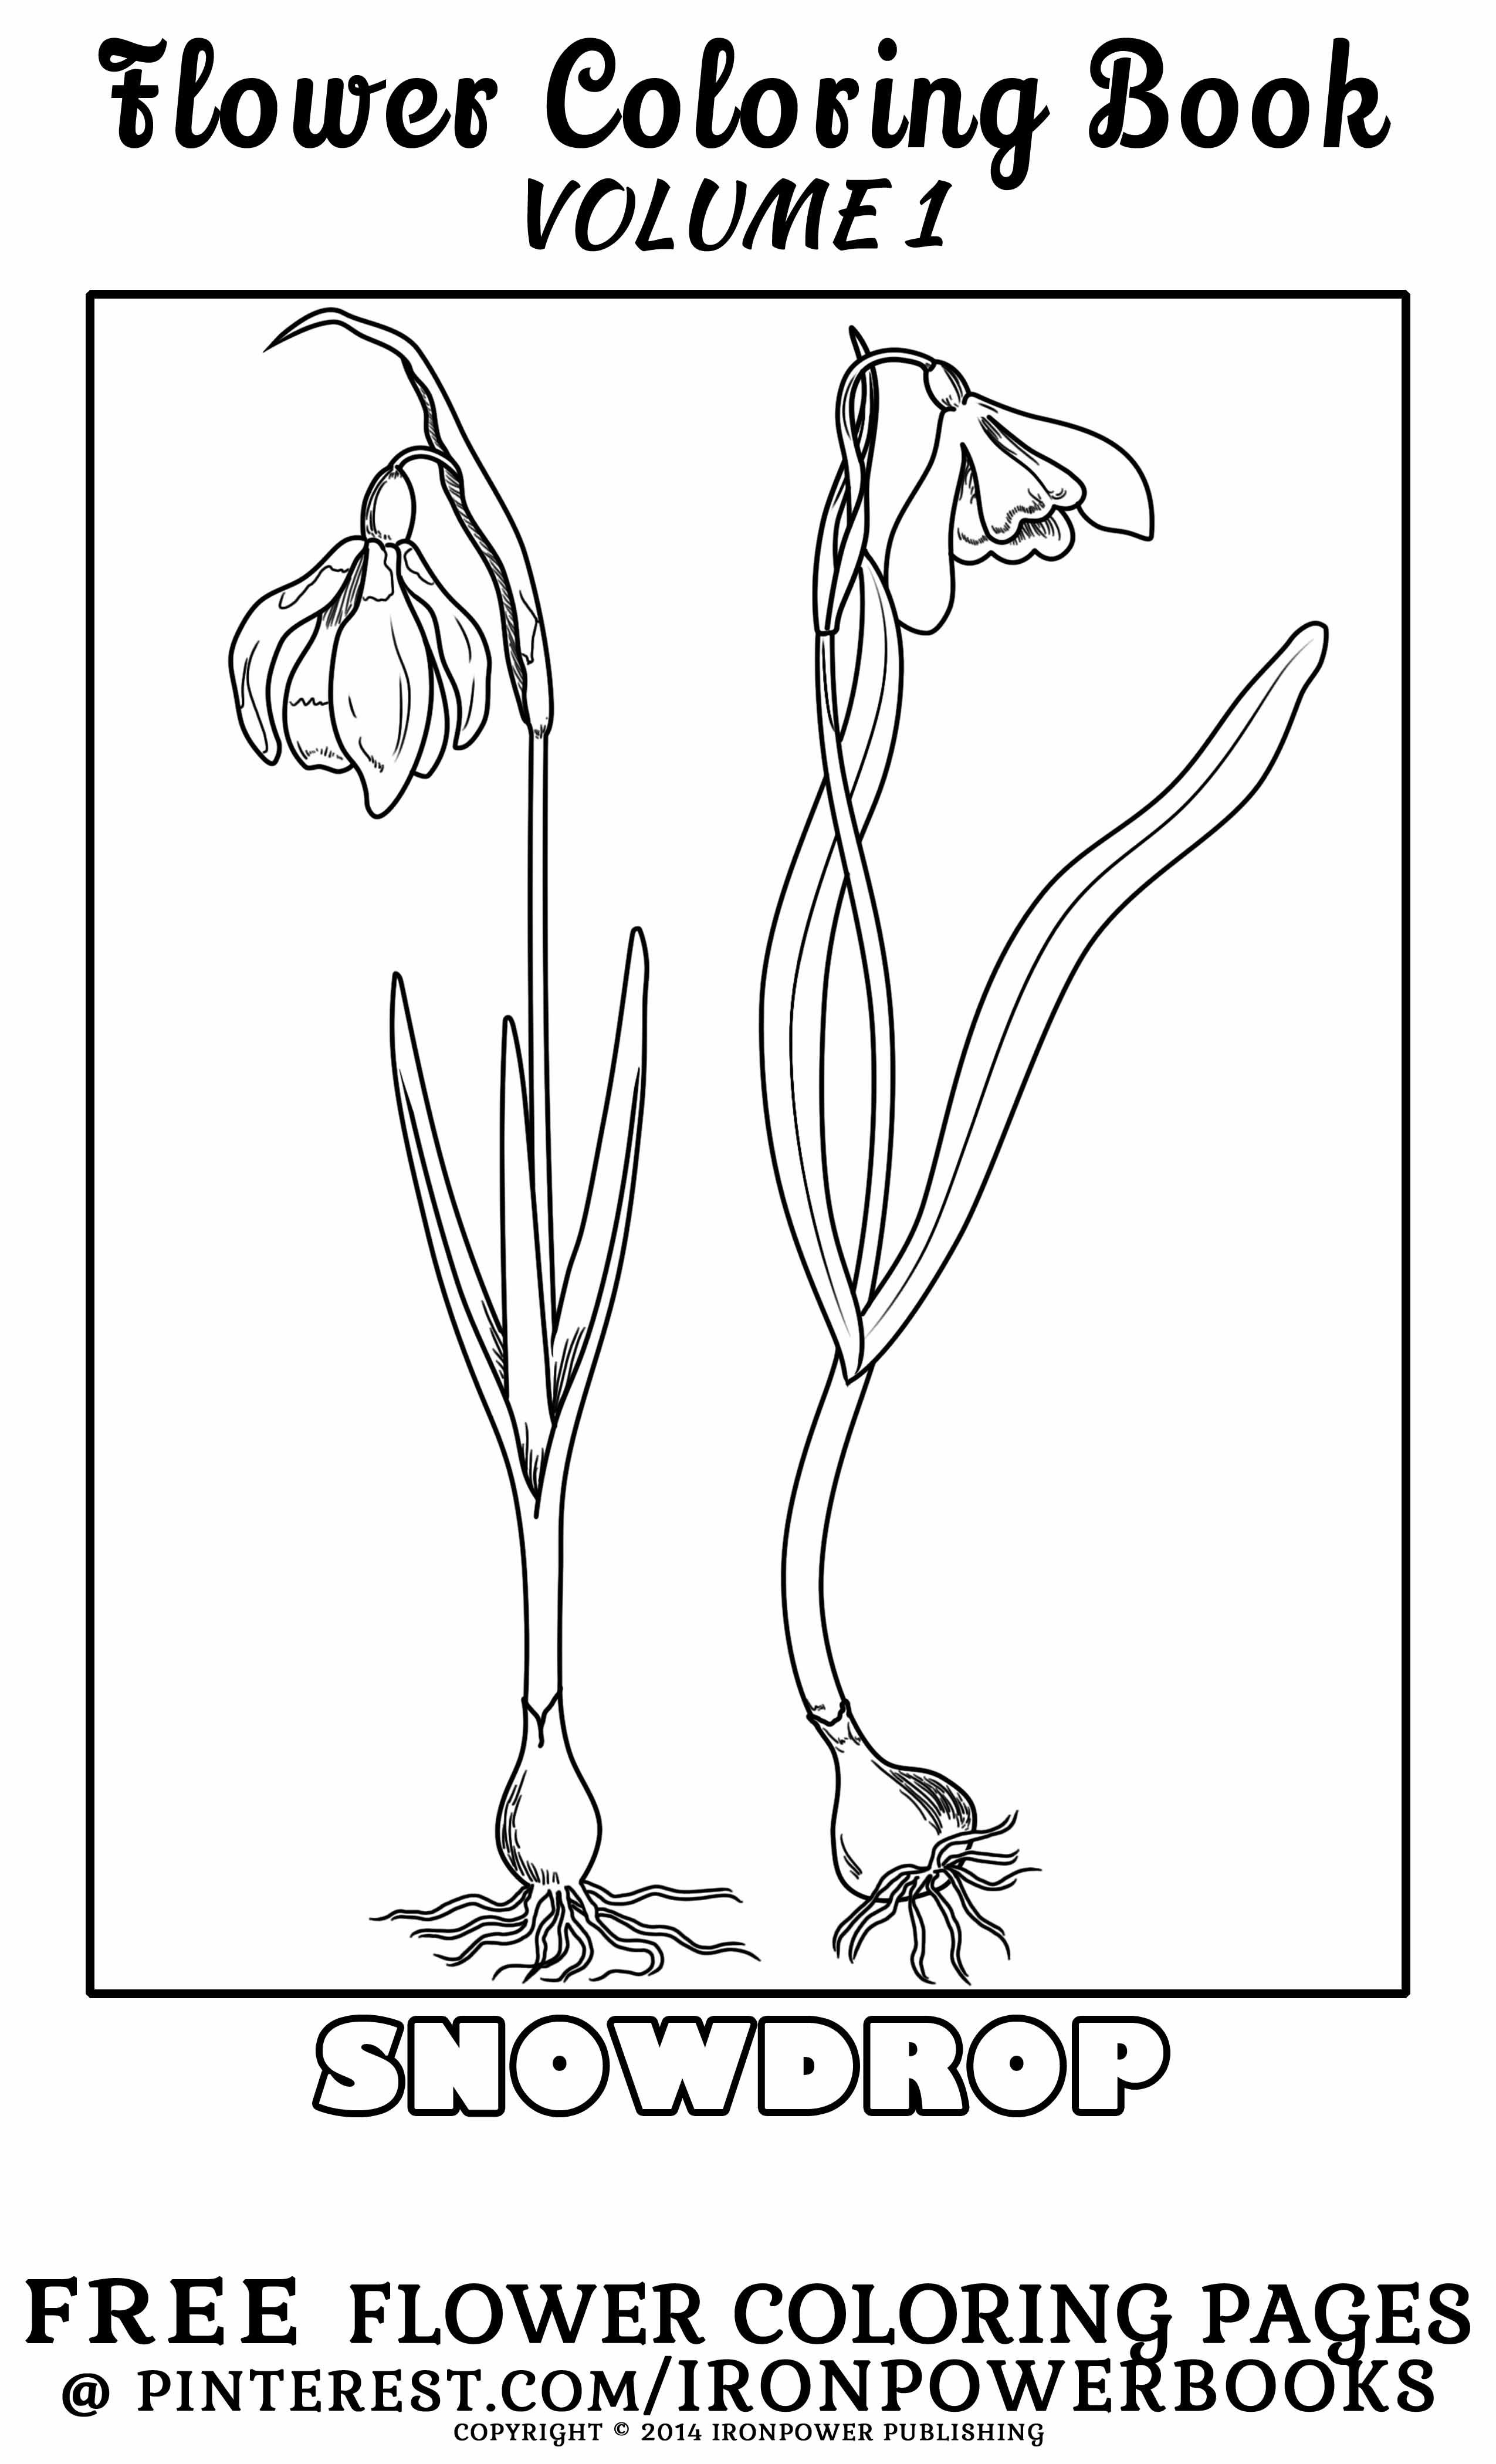 Free Flowers Coloring Pages Ironpowerbooks Snowdrop Flower Coloring For Kids Freecoloringpages Fairy Coloring Pages Flower Coloring Pages Fairy Coloring